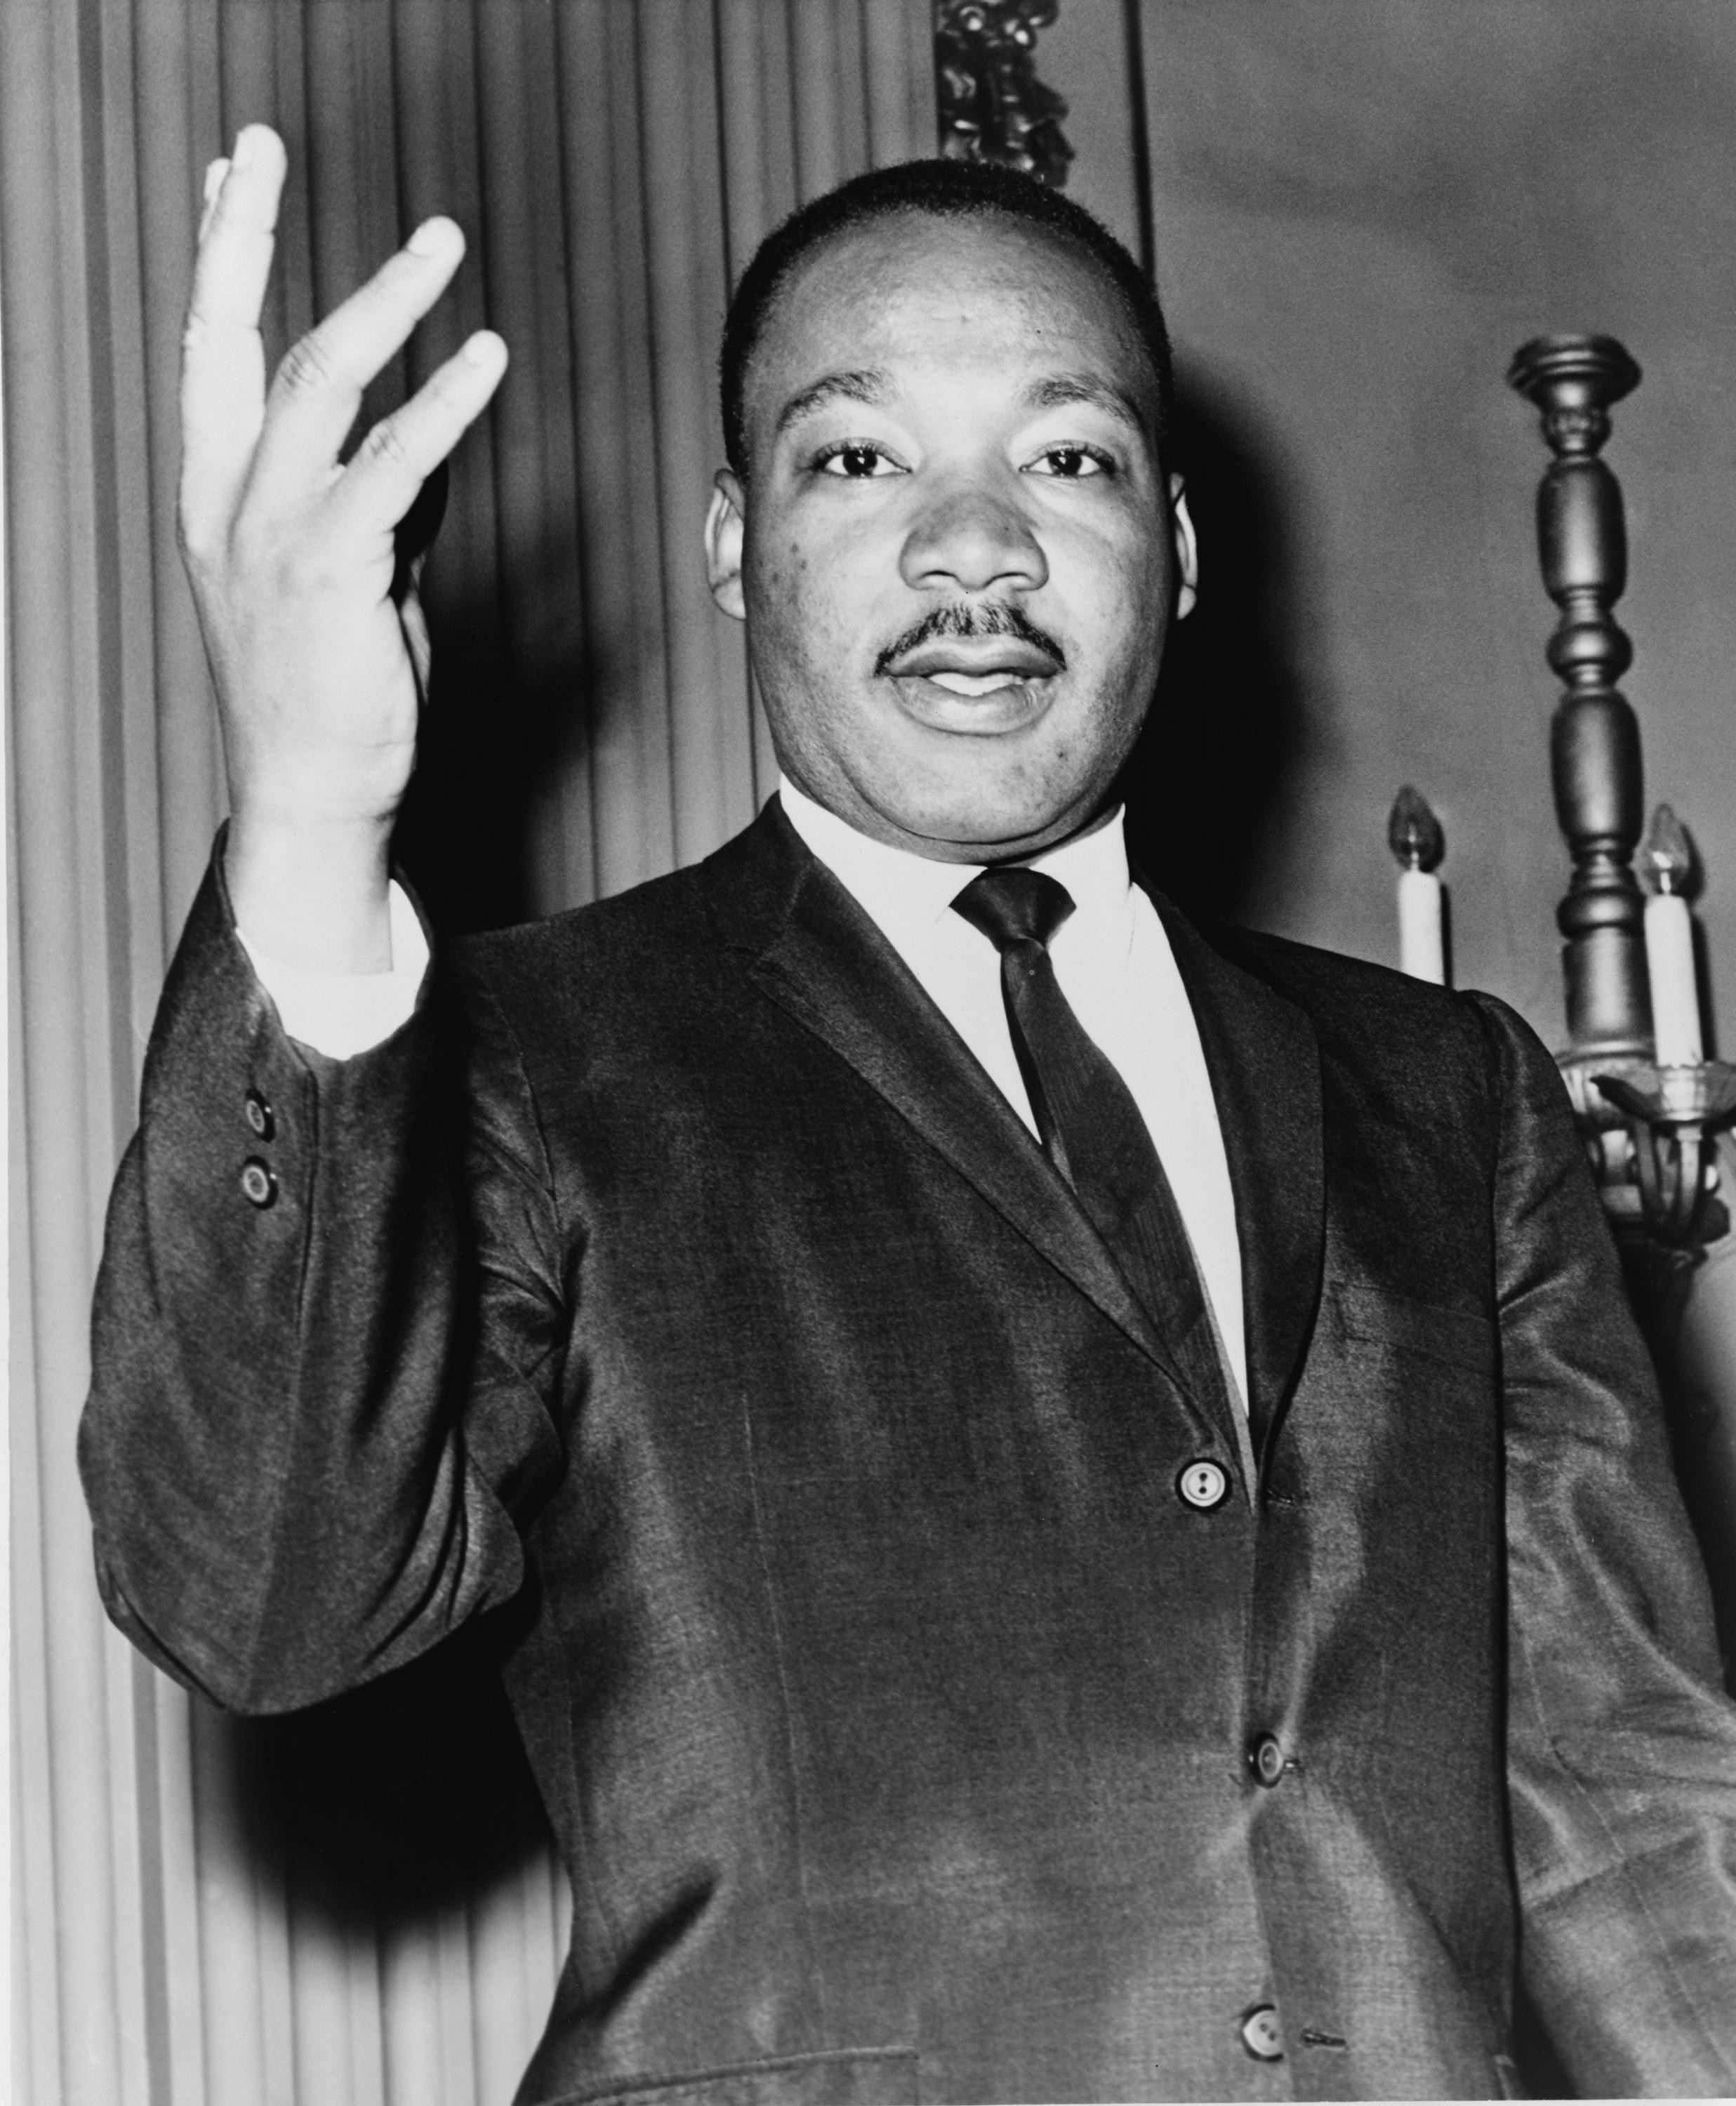 the life and contributions of martin luther king jr to the civil rights movement in america As the leader of the nonviolent civil rights movement of the 1950s and 1960s, martin luther king jr traversed the country in his quest for freedom his involvement in the movement began during the bus boycotts of 1955 and was ended by an assassin's bullet in 1968 as the unquestioned leader of the.